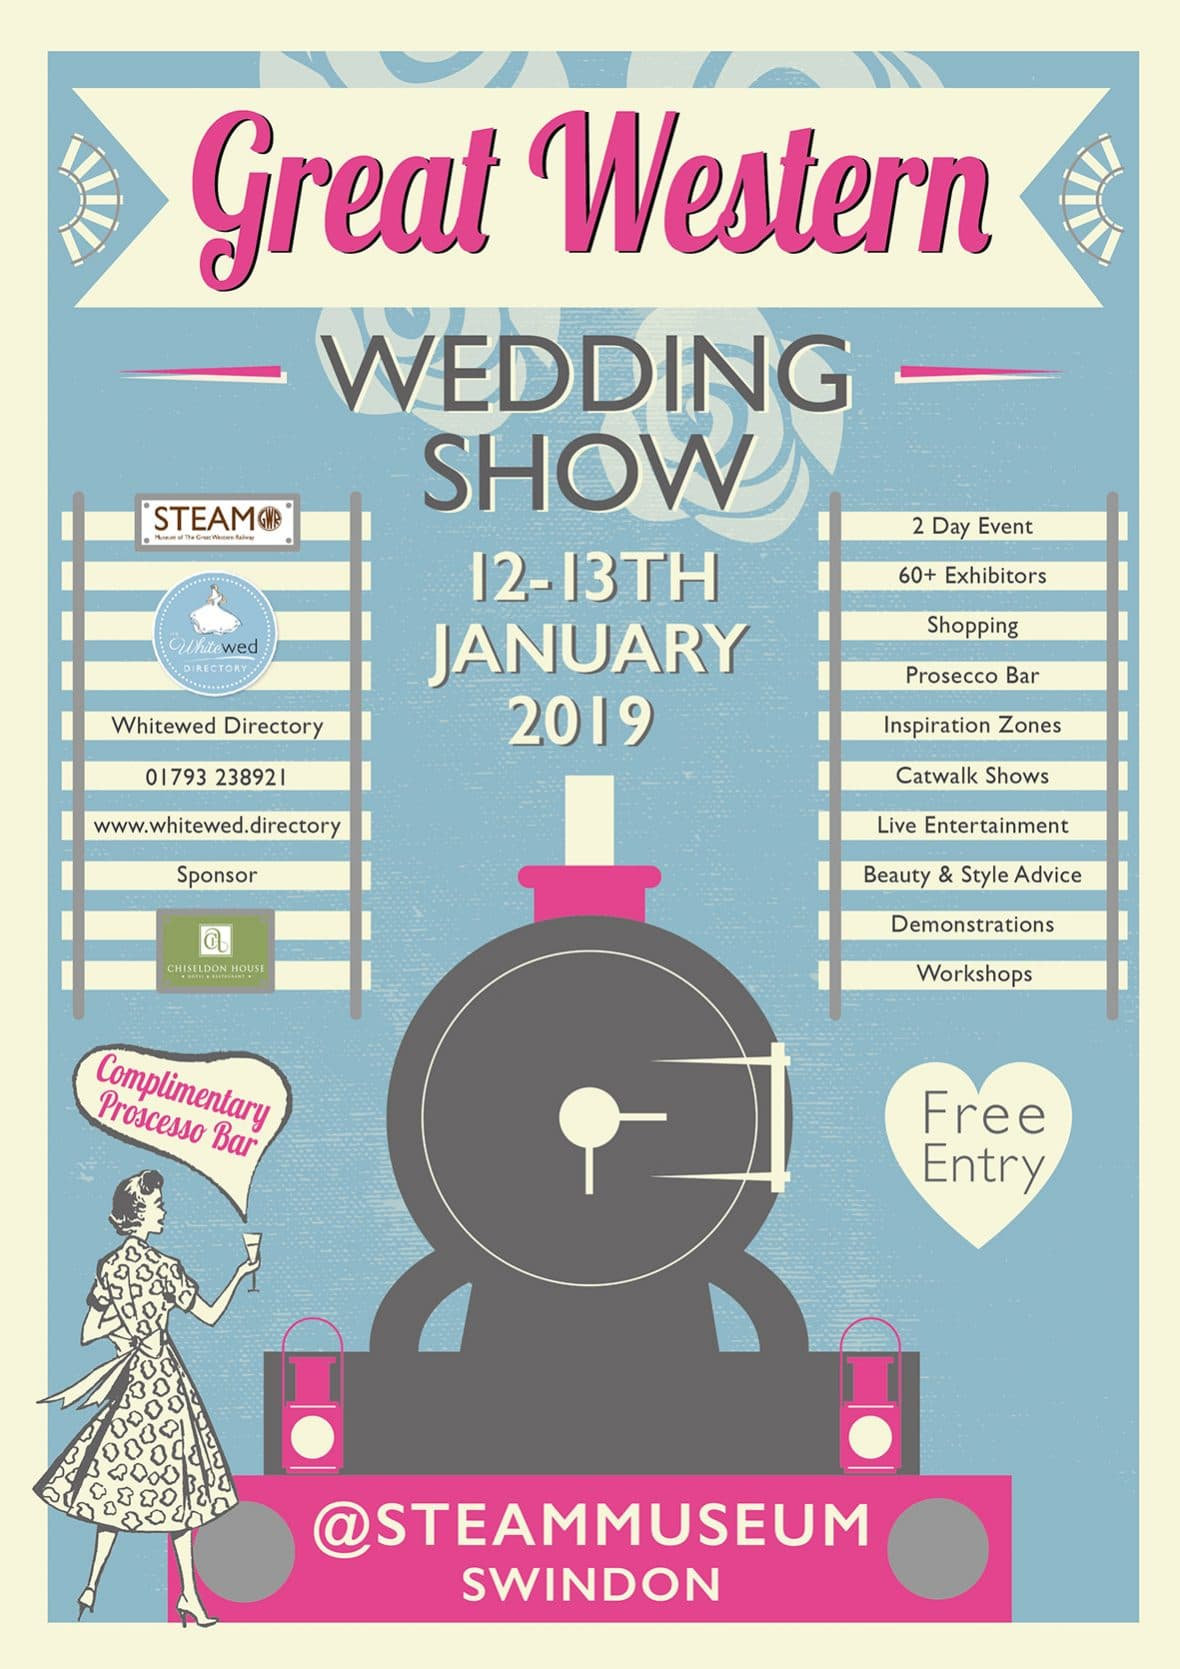 Steam Museum wedding show suppliers